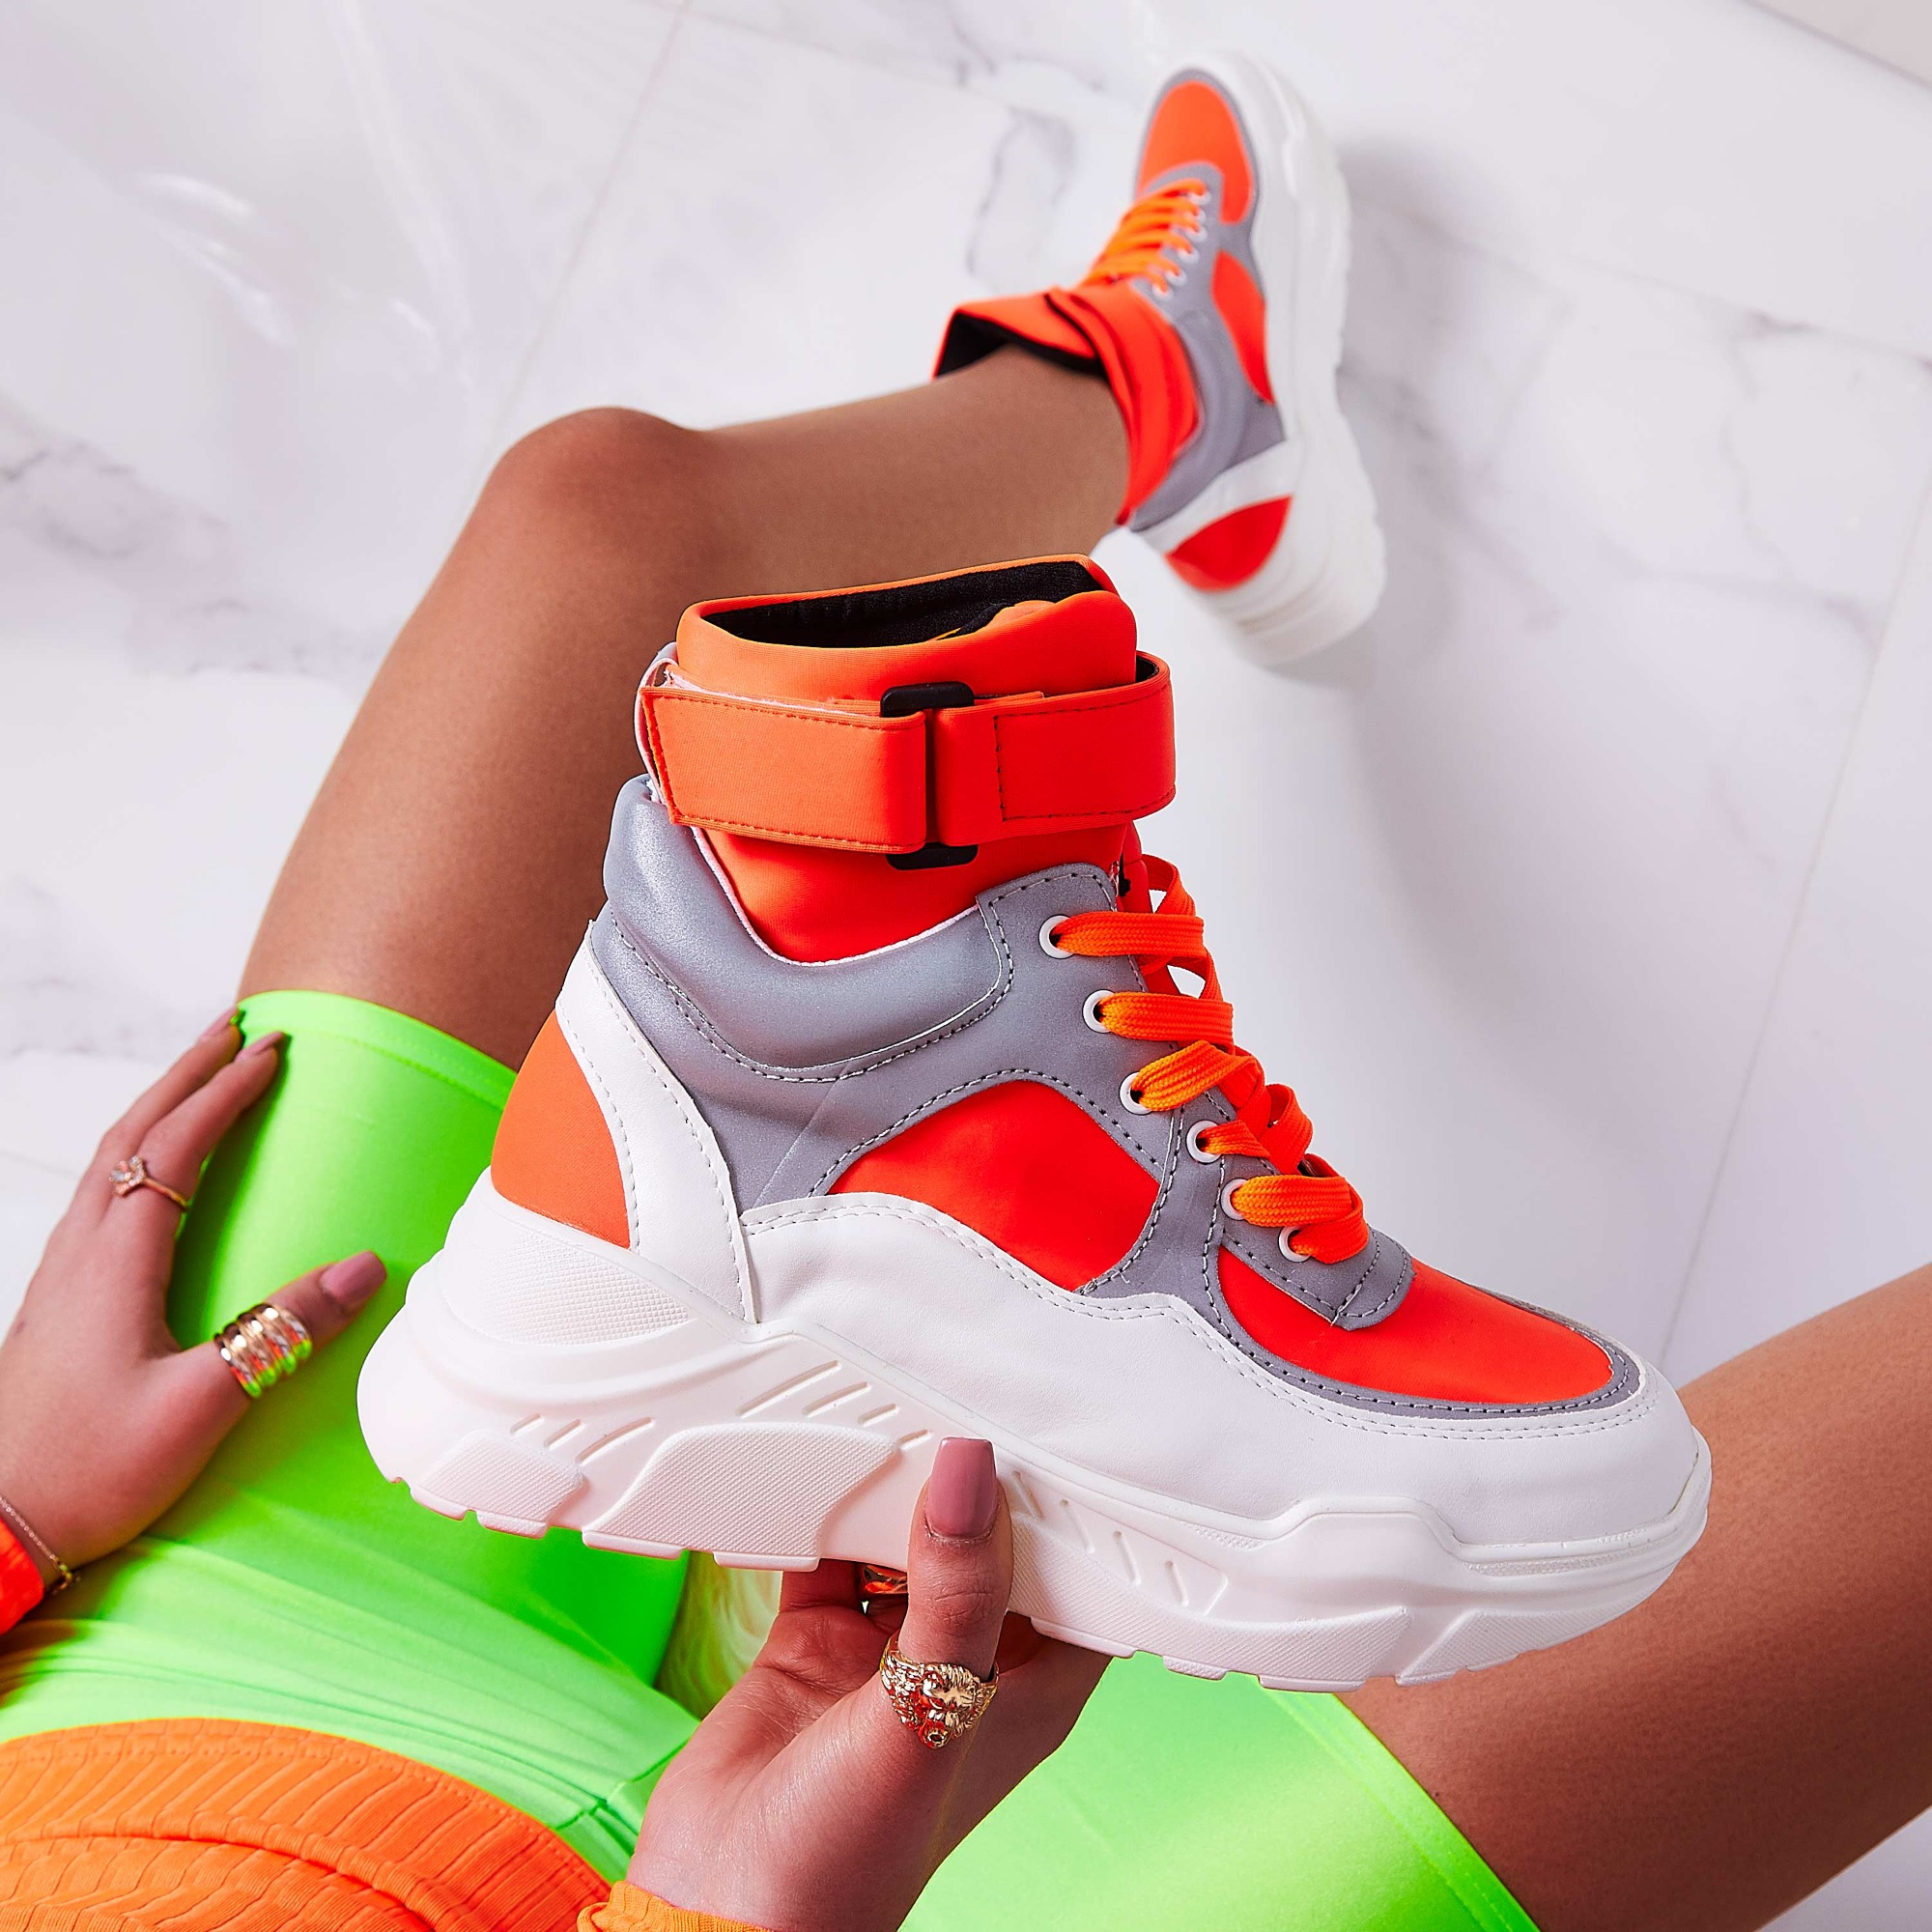 Coco High Top Reflective Trainer In Orange